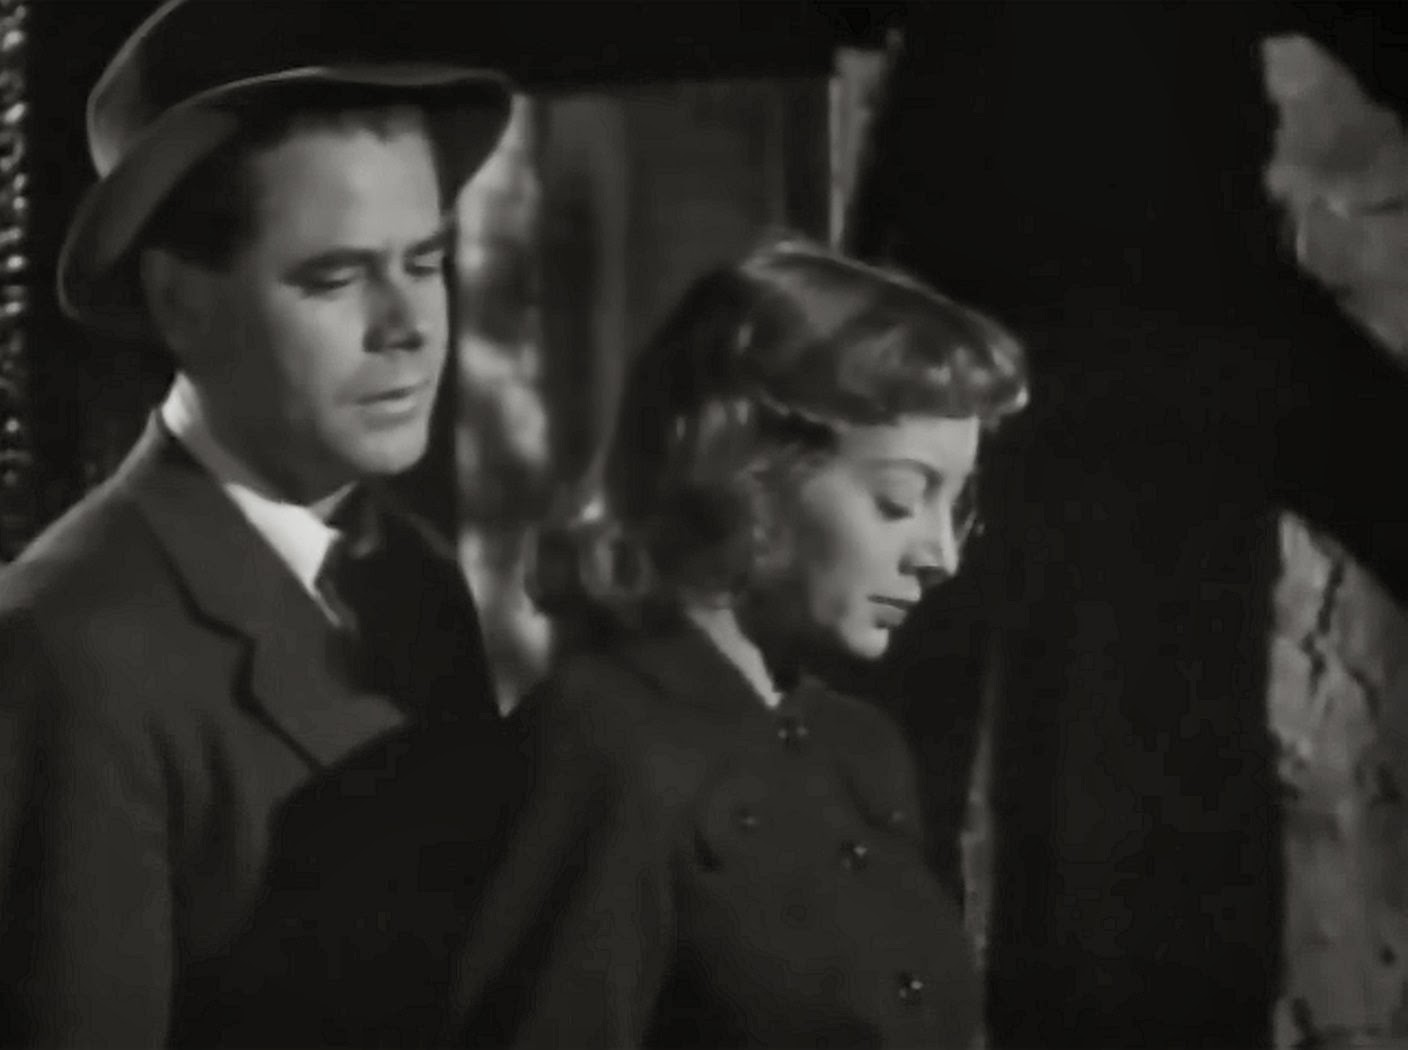 Glenn Ford and Evelyn Keyes in 'Mr. Soft Touch'